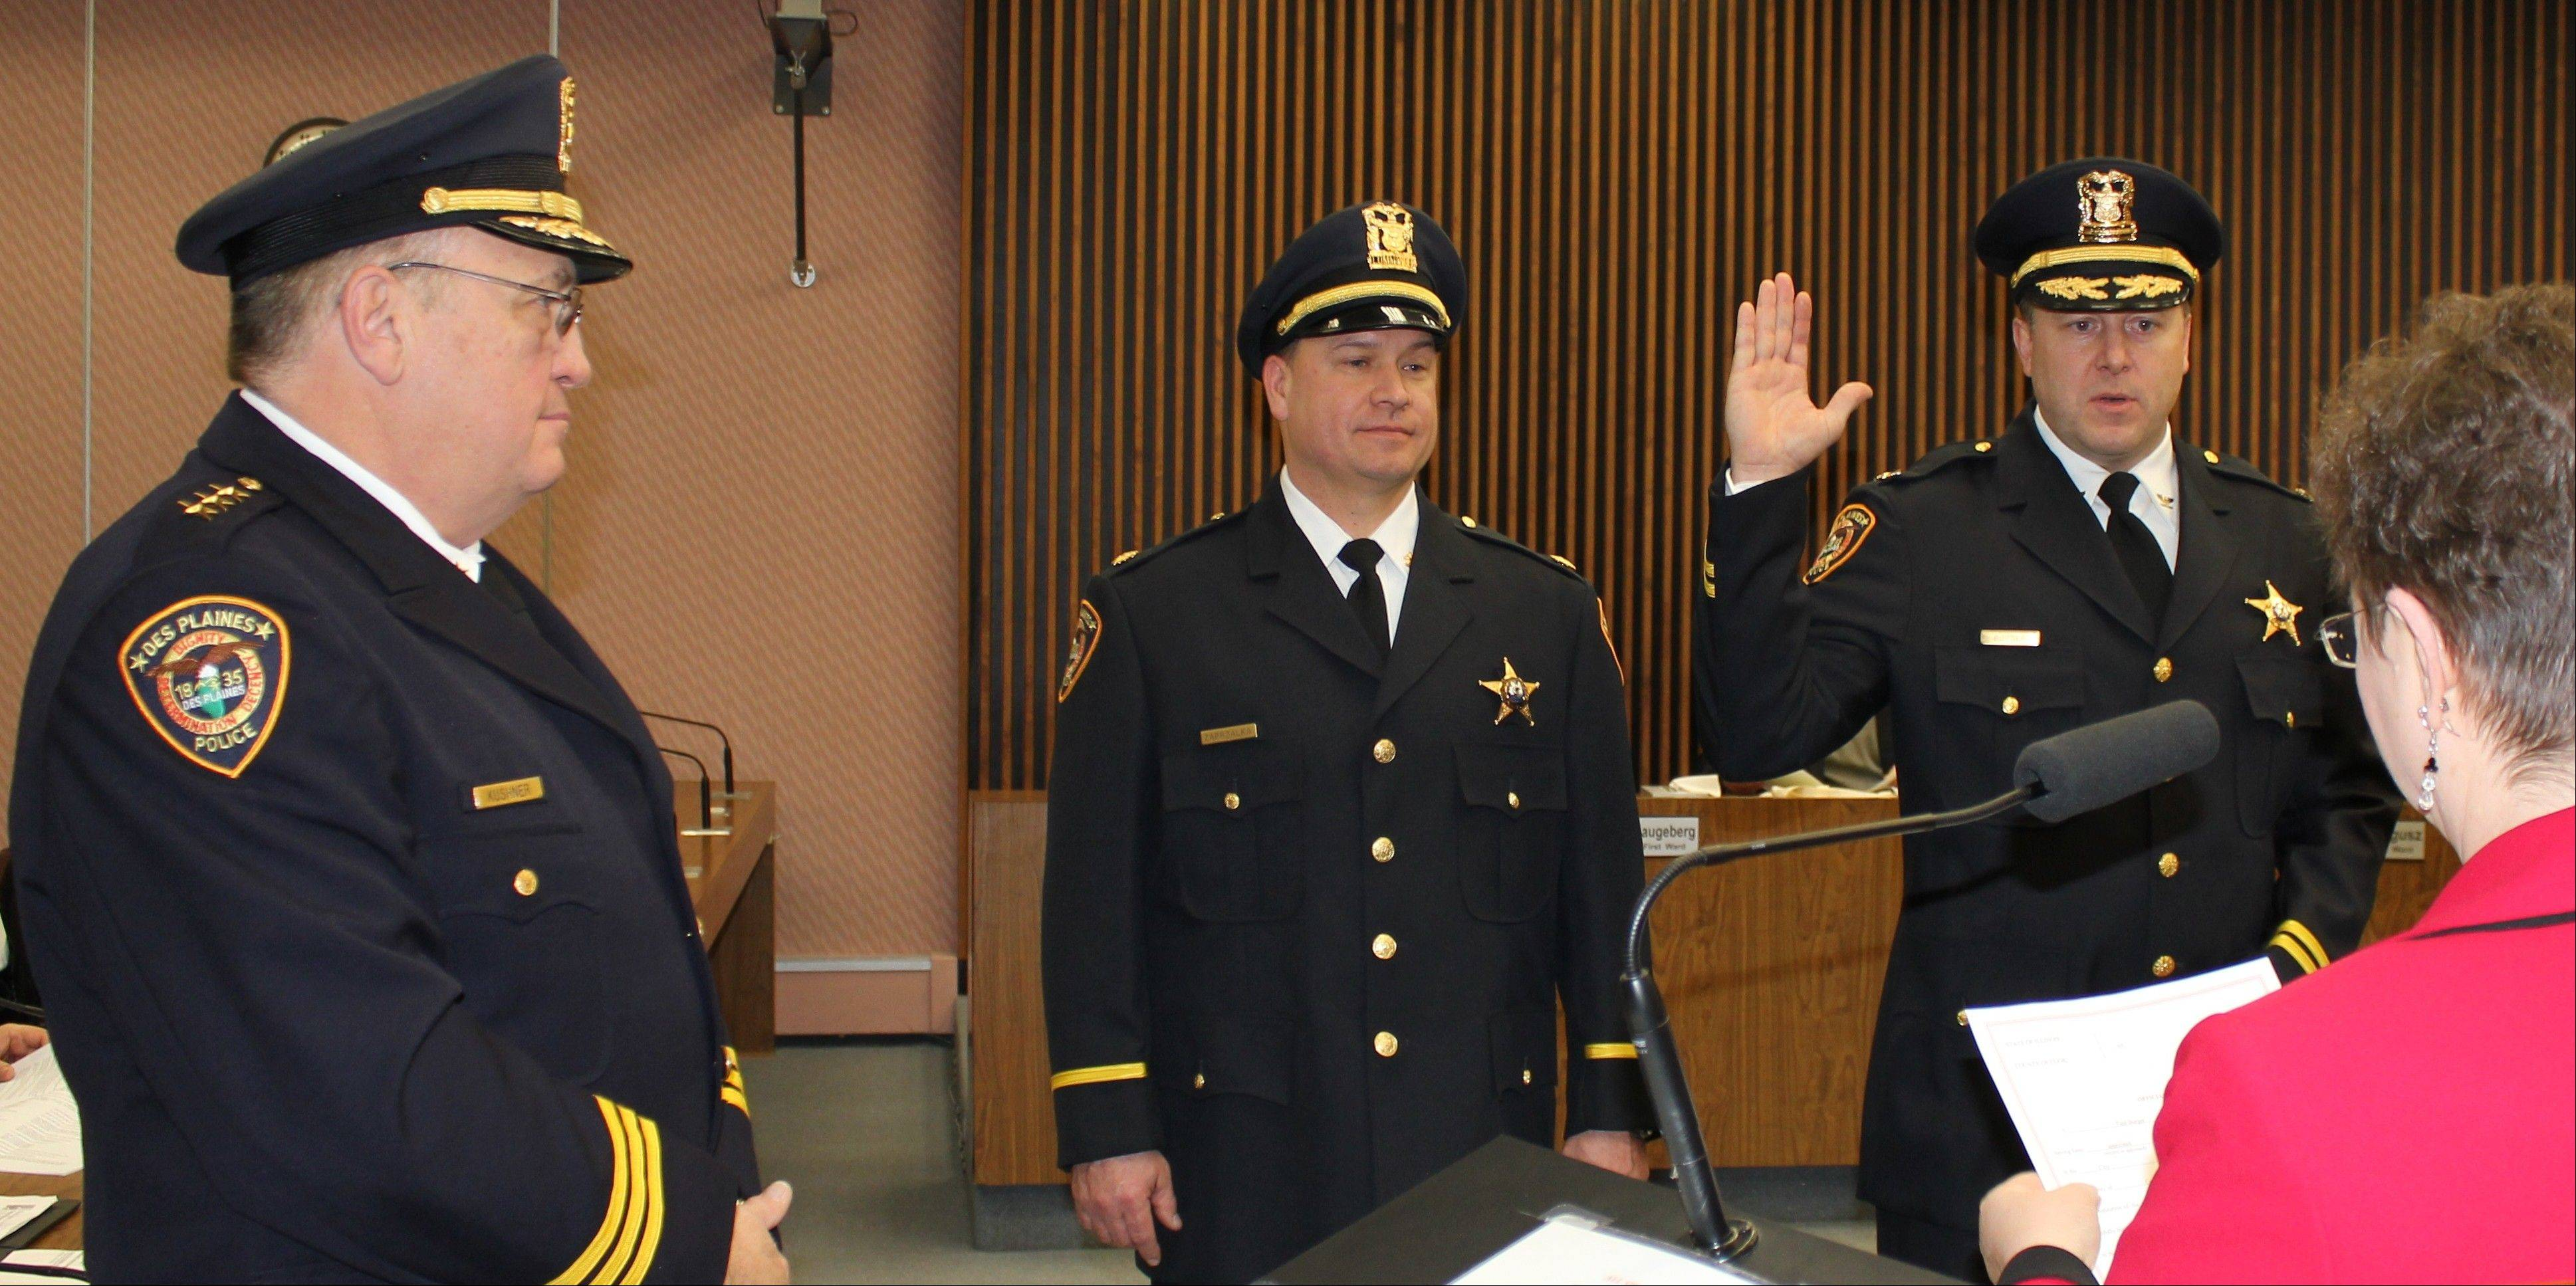 From left, Des Plaines Police Chief William Kushner and Sgt. Chester Zaprzalka listen as Cmdr. Paul Burger is sworn in as deputy chief by City Clerk Gloria Ludwig at Monday's city council meeting. Zaprzalka also was promoted to commander of support services.